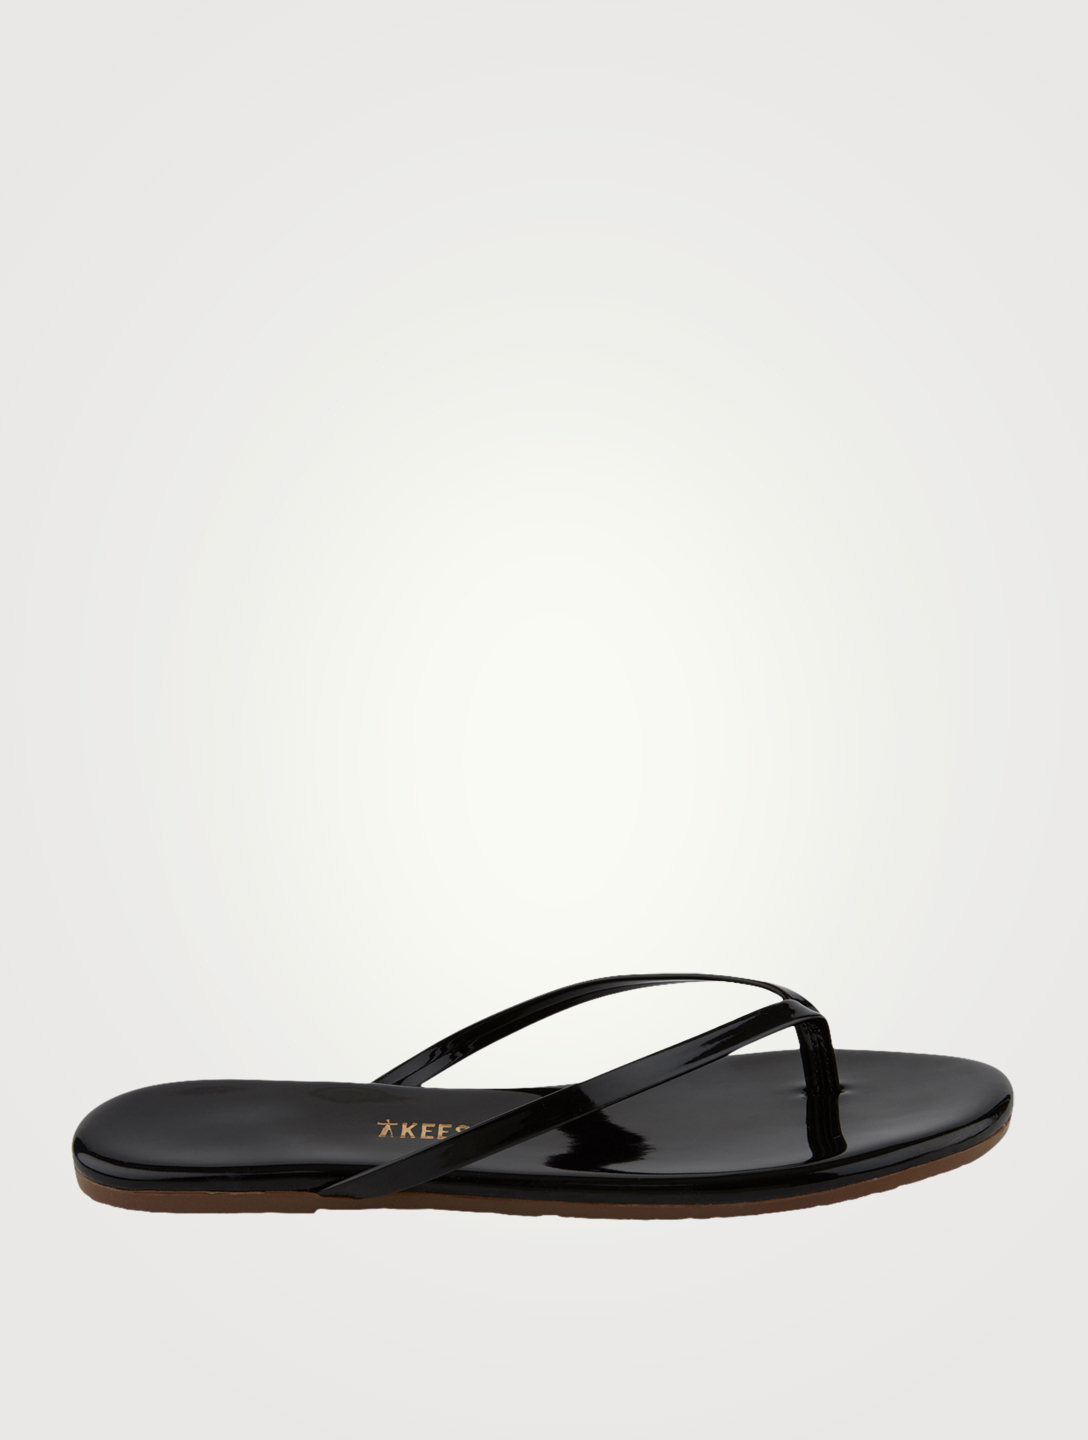 TKEES Lily Patent Leather Thong Sandals Women's Black